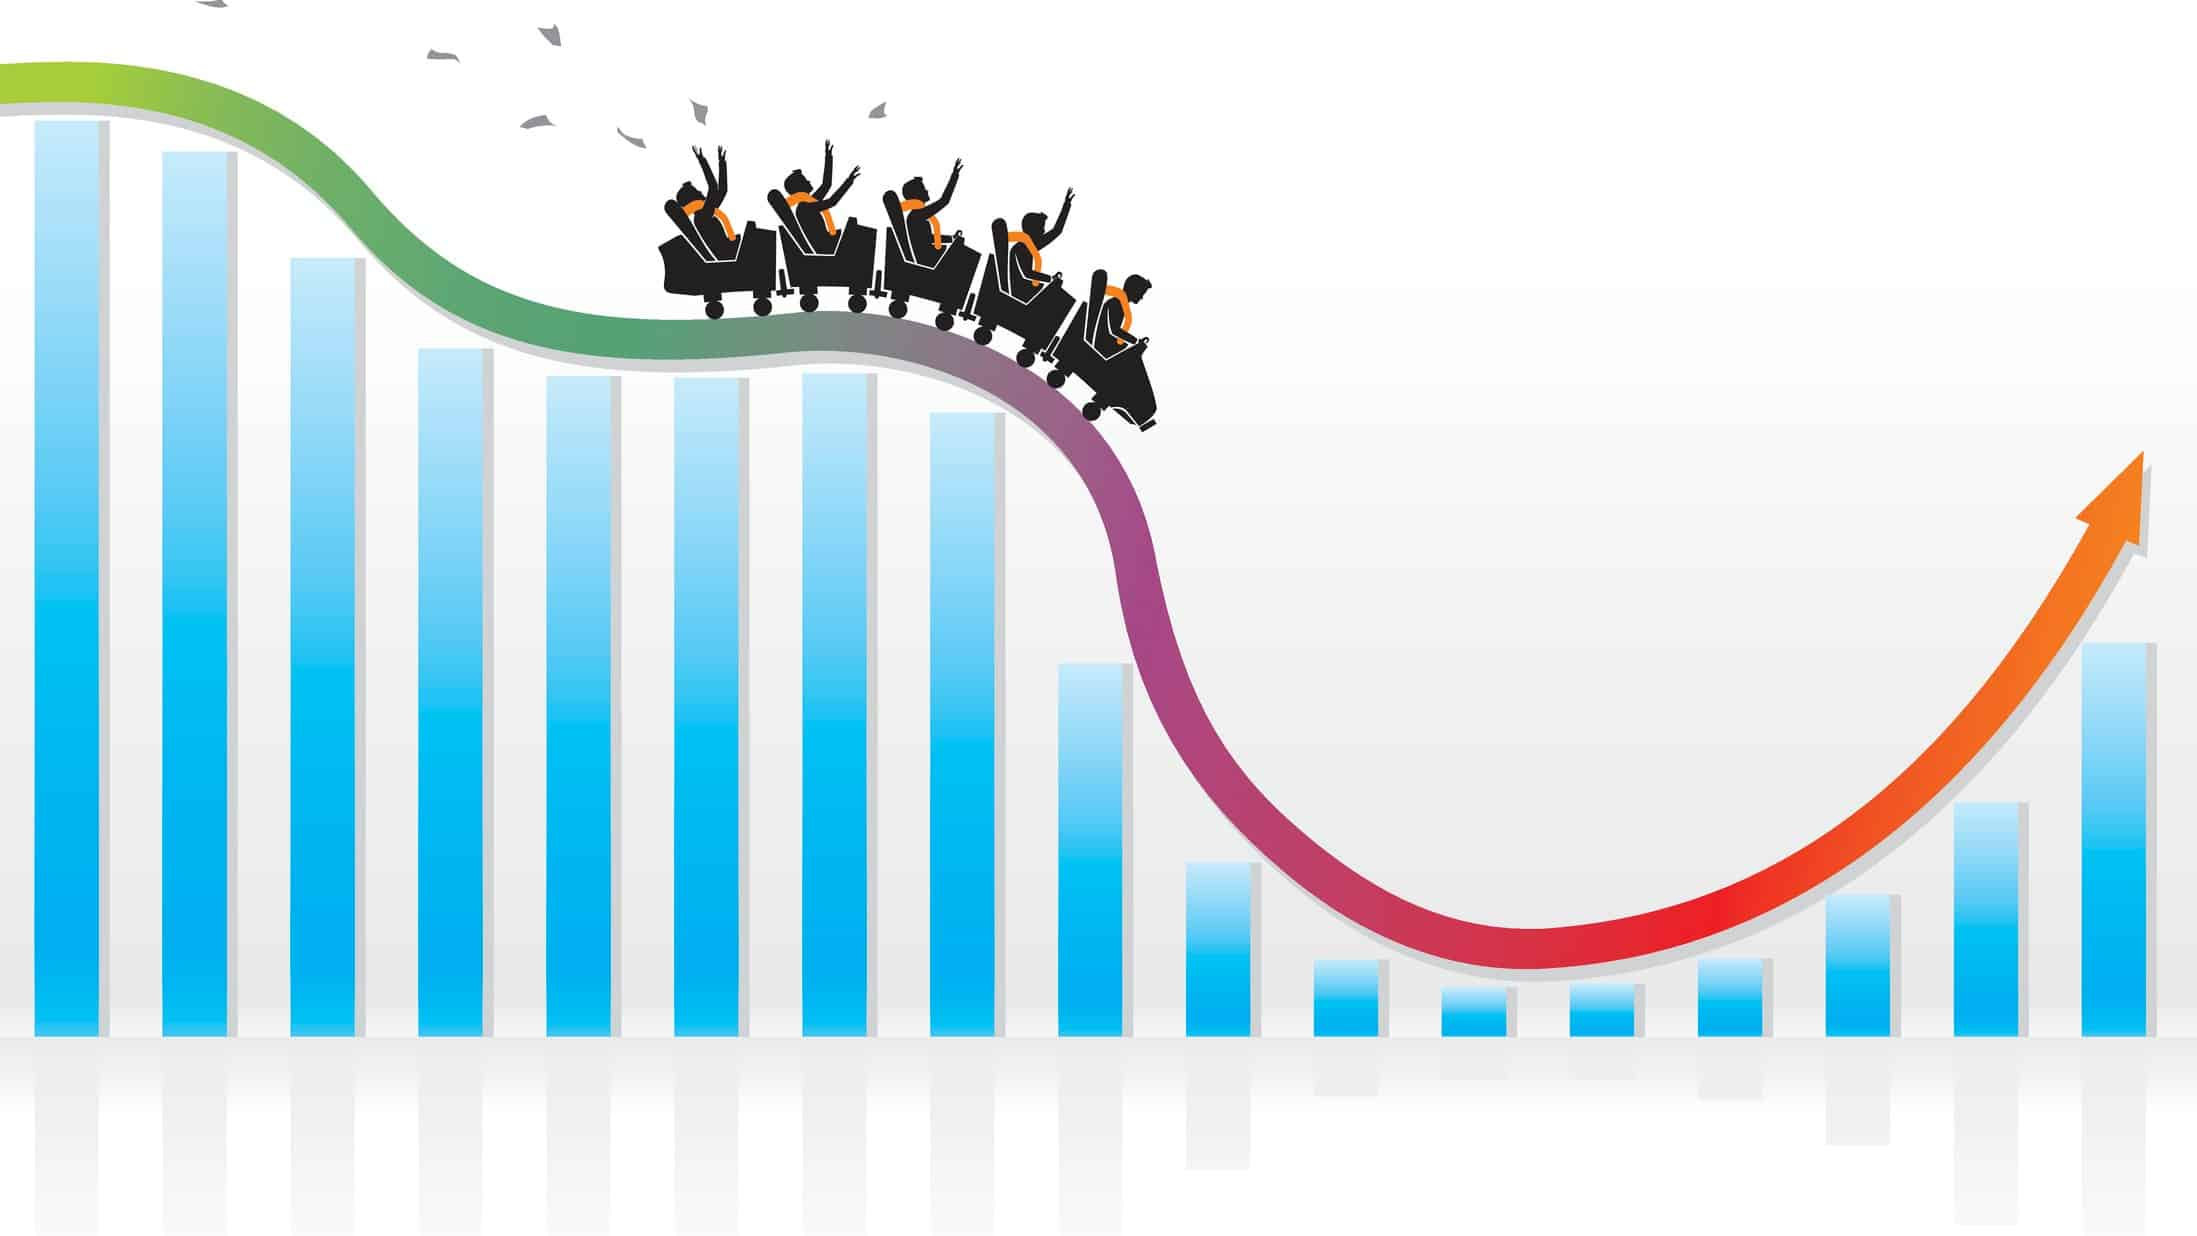 share price rollercoaster